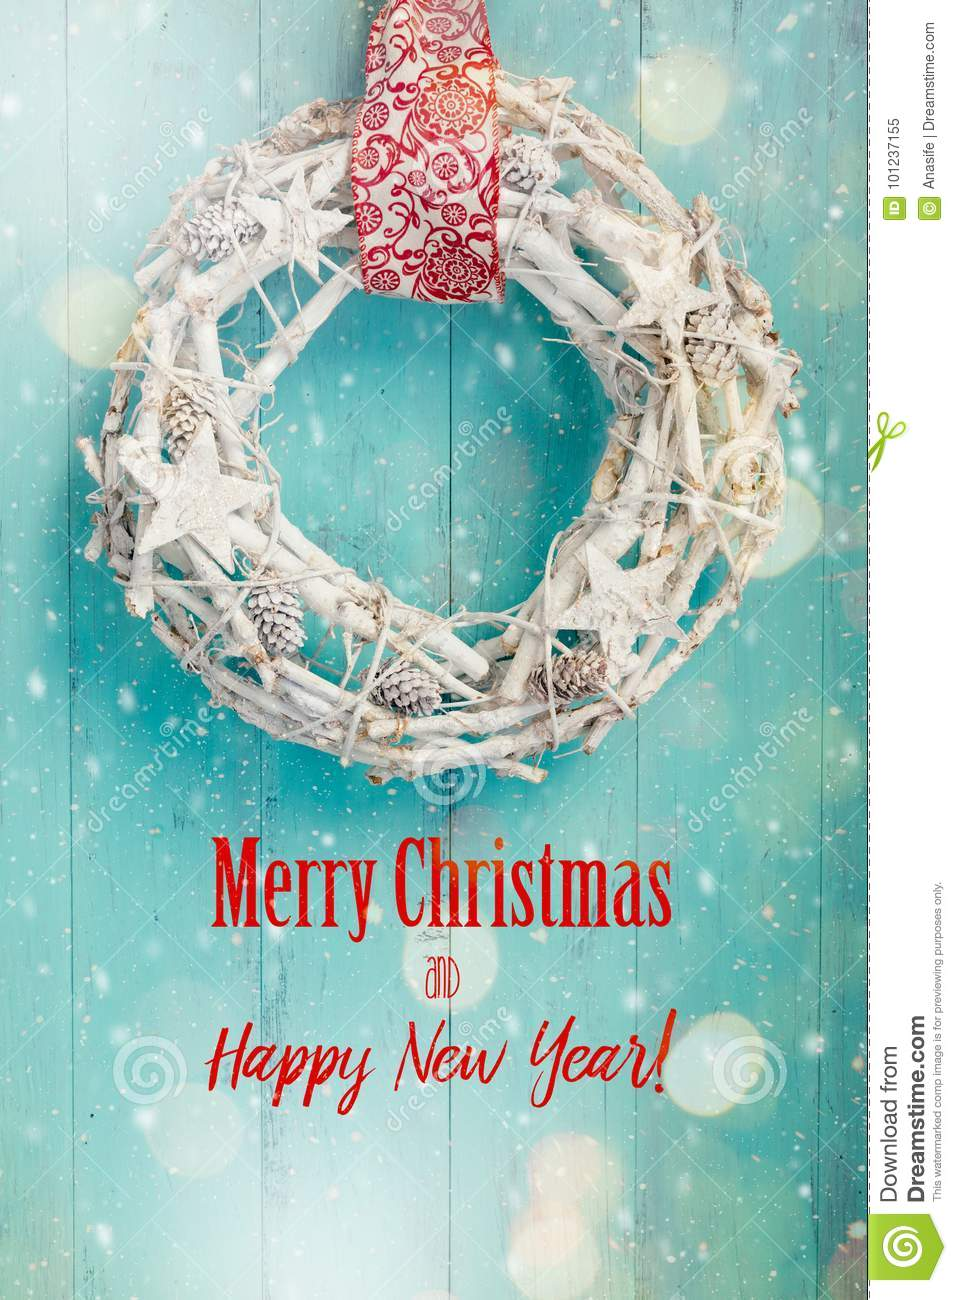 christmas card with white wreath on a turquoise door stock image